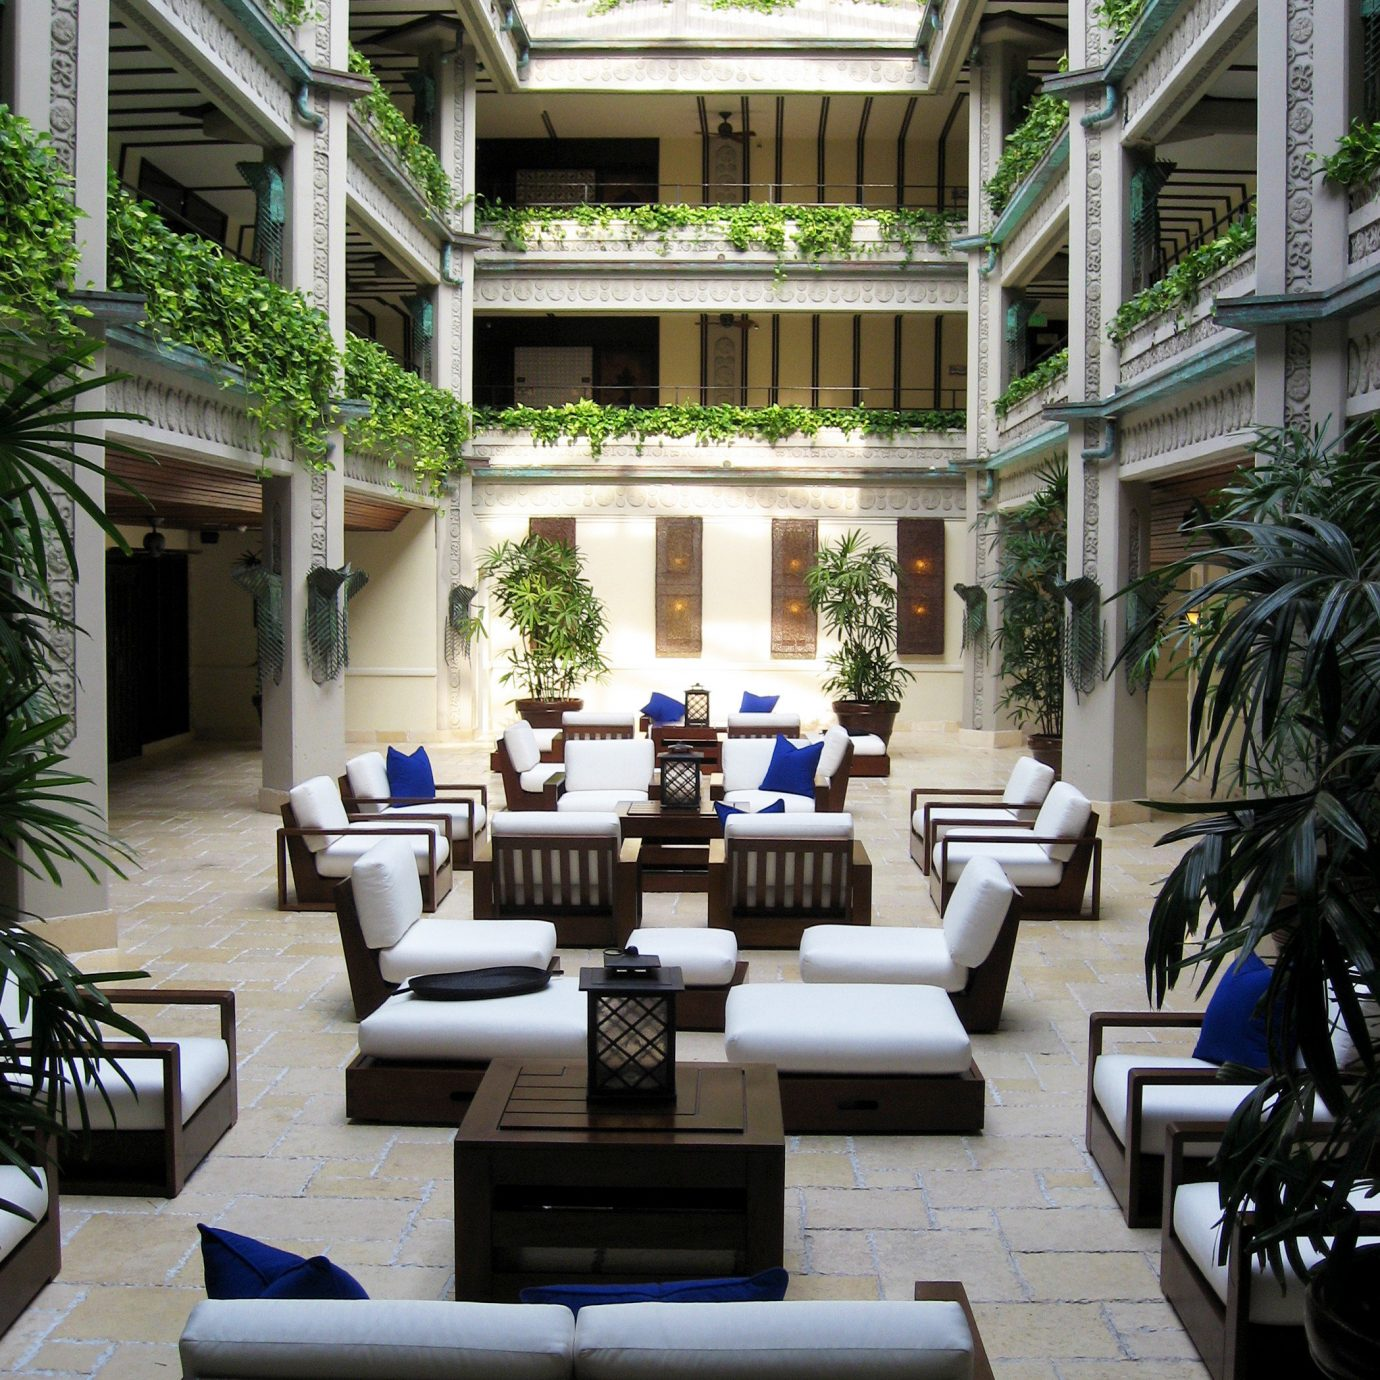 Courtyard Lobby Lounge condominium property building home mansion Resort living room Villa outdoor structure porch